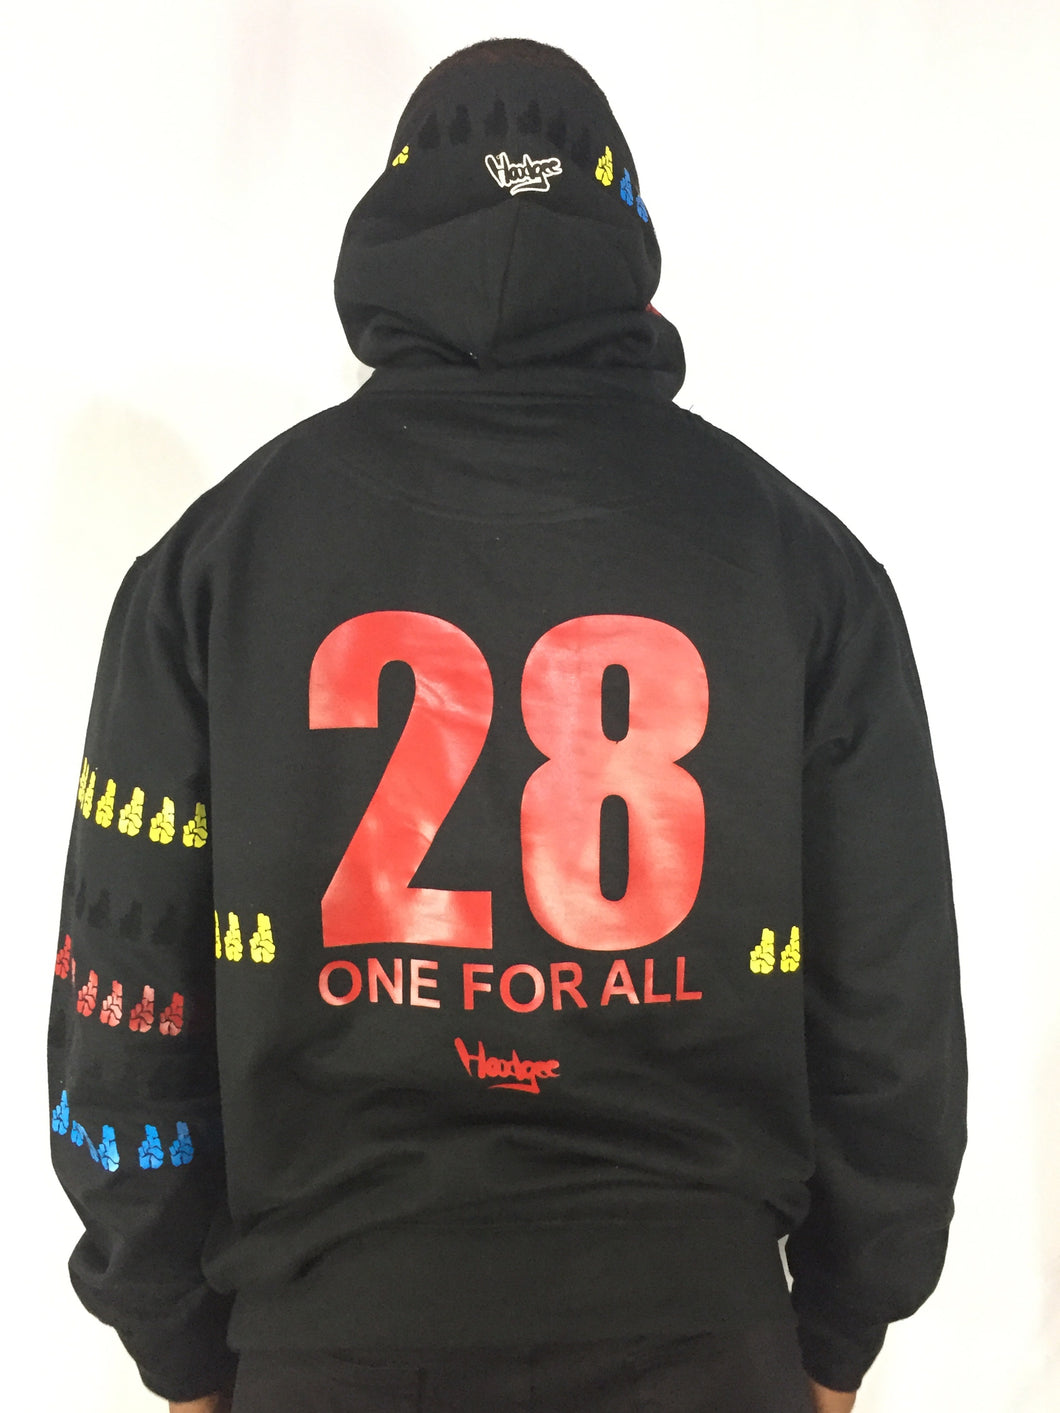 One For All Limited Hoodgee Brand Nubian 28th Anniversary